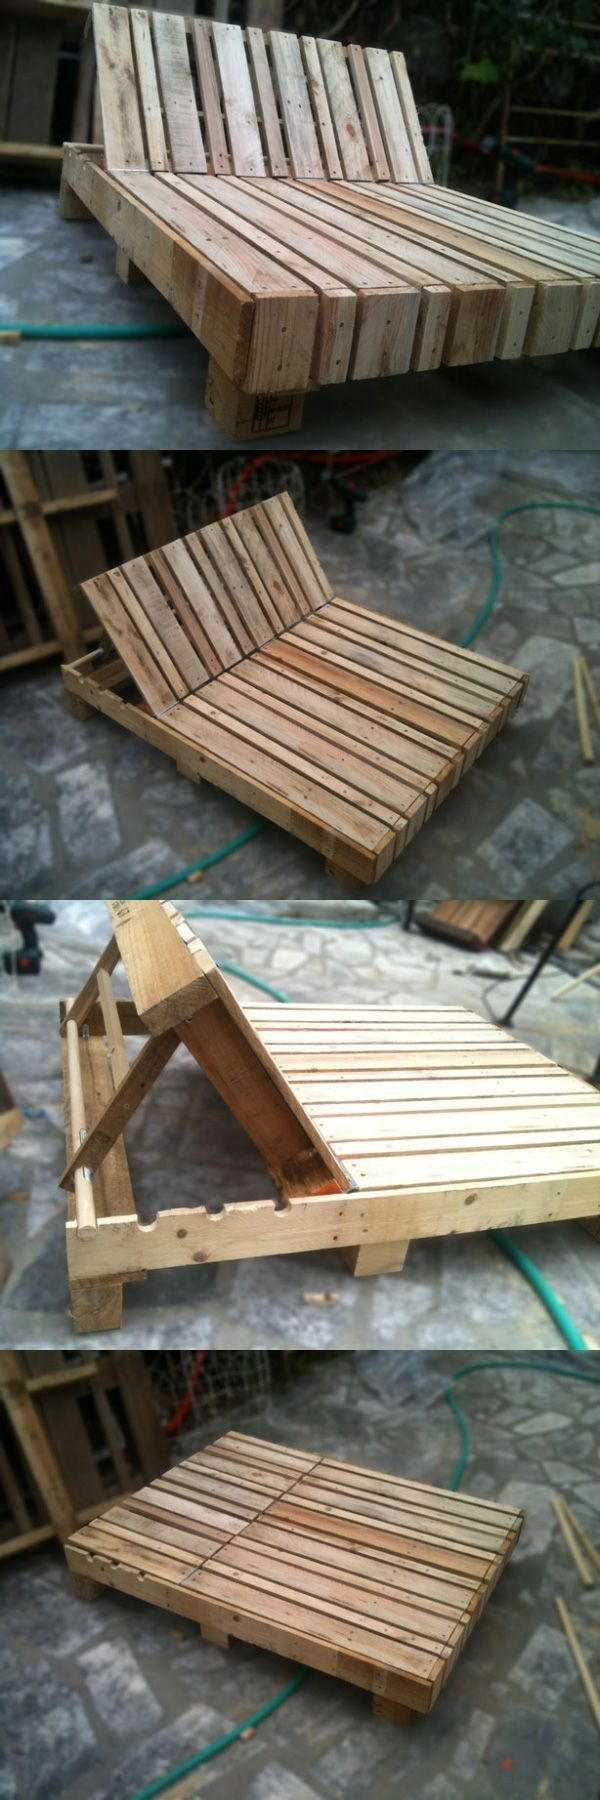 Pallet Lounge Chair....Would be perfect for the back deck!!! by oldrose